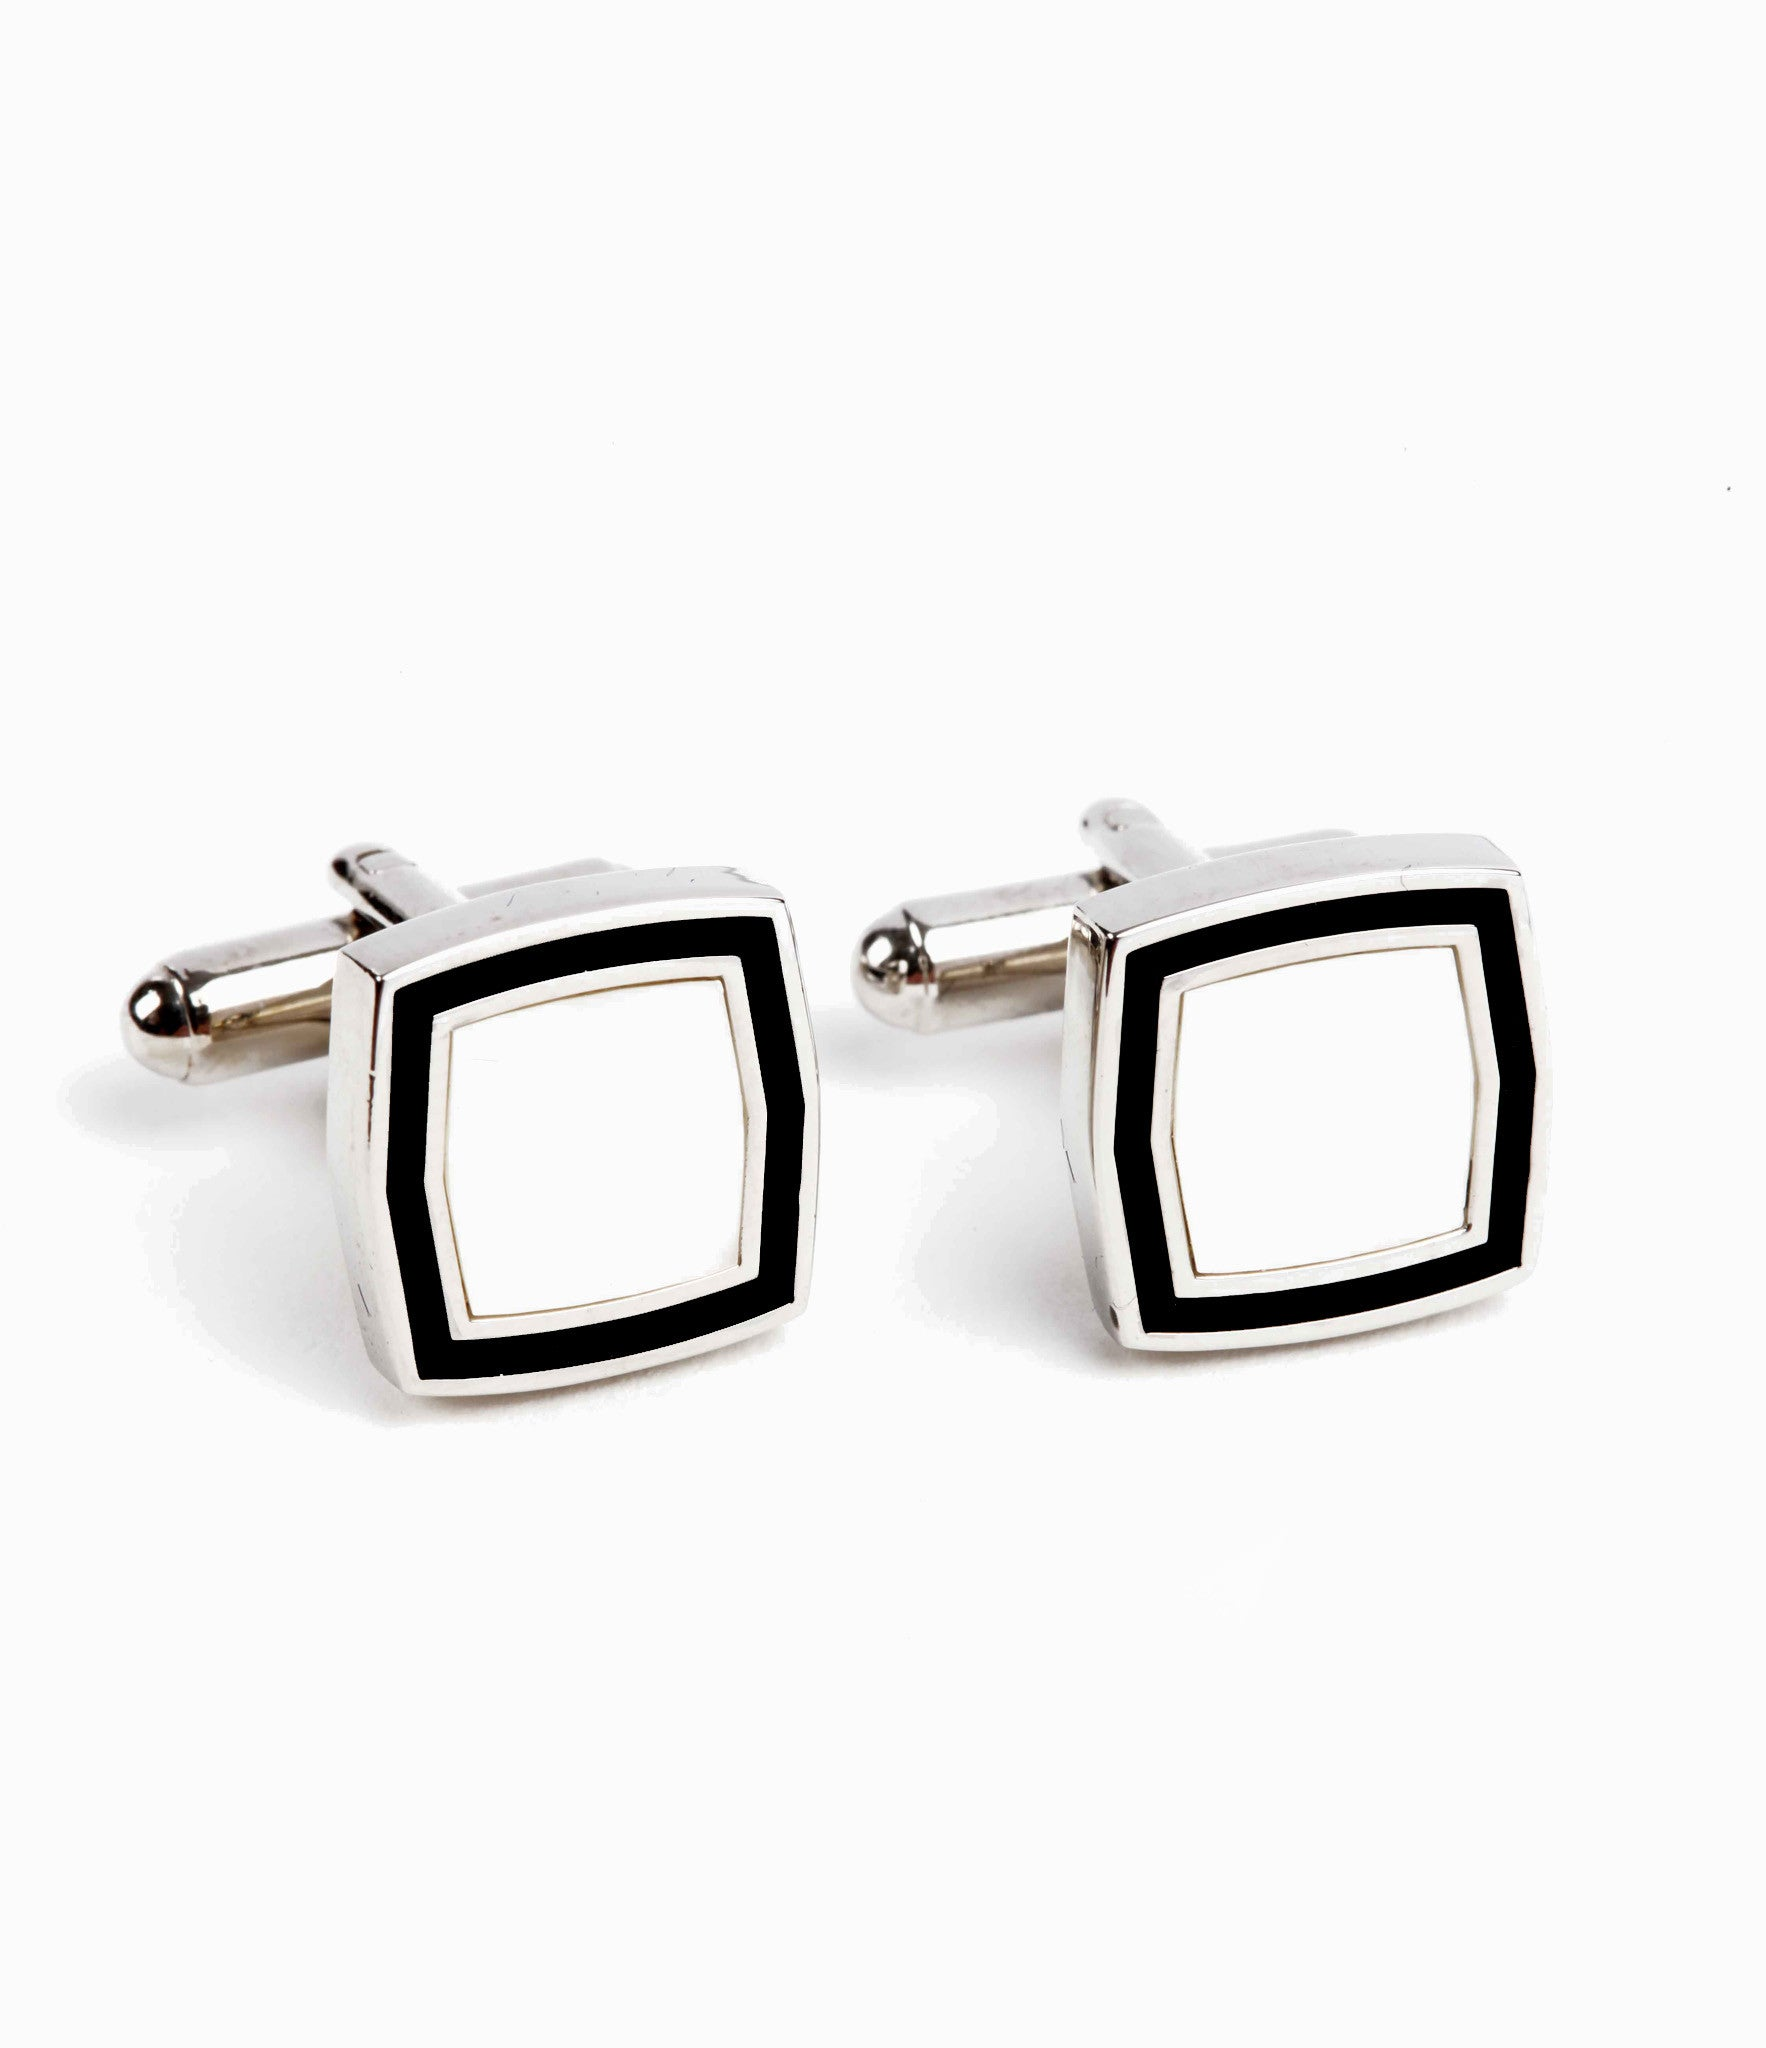 Imported black and white cufflinks